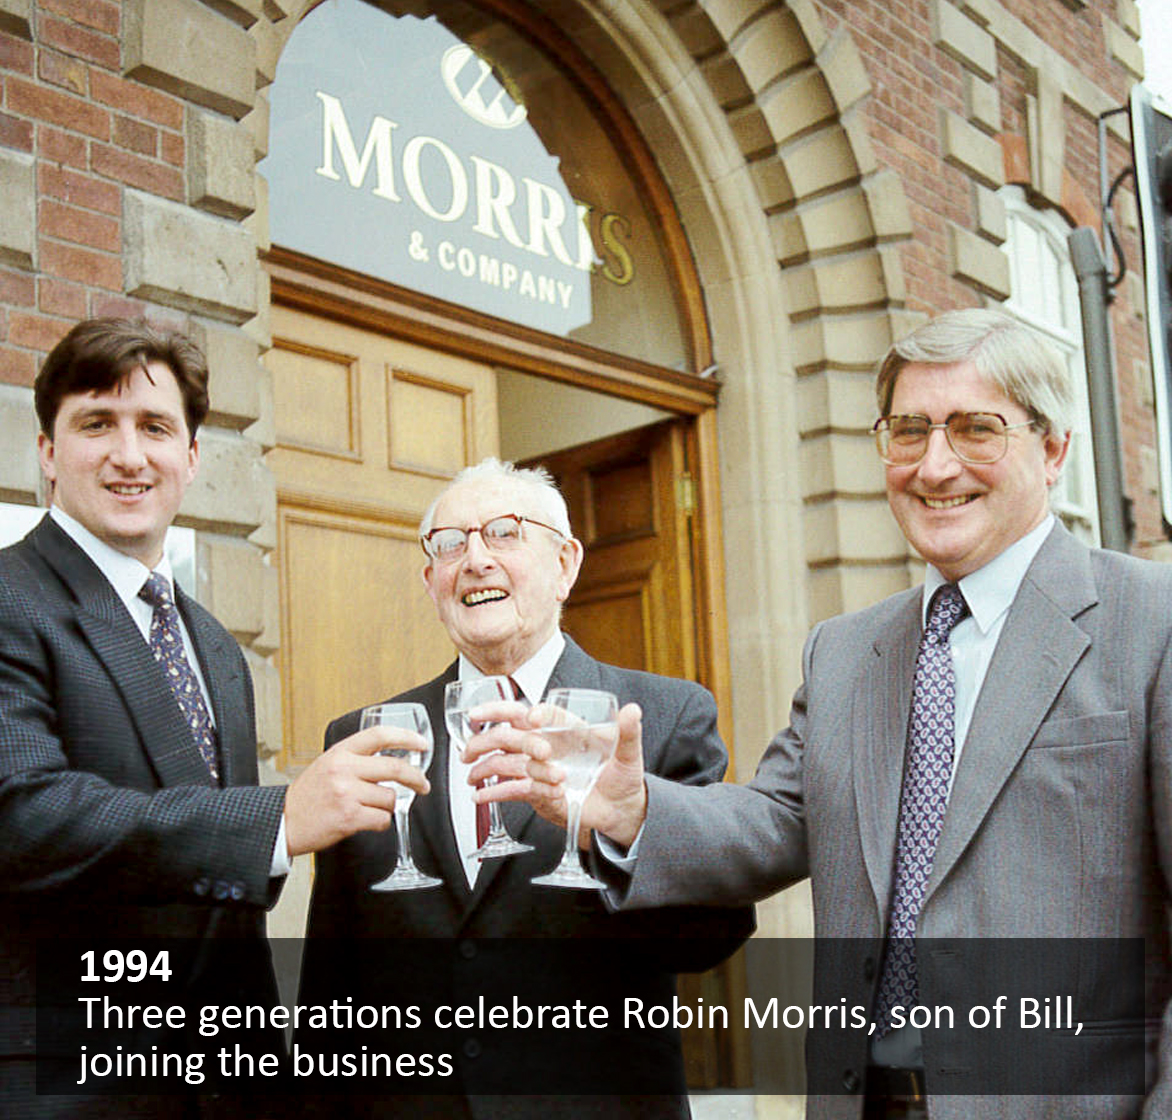 Three generations celebrate Robin Morris, son of Bill, joining the business